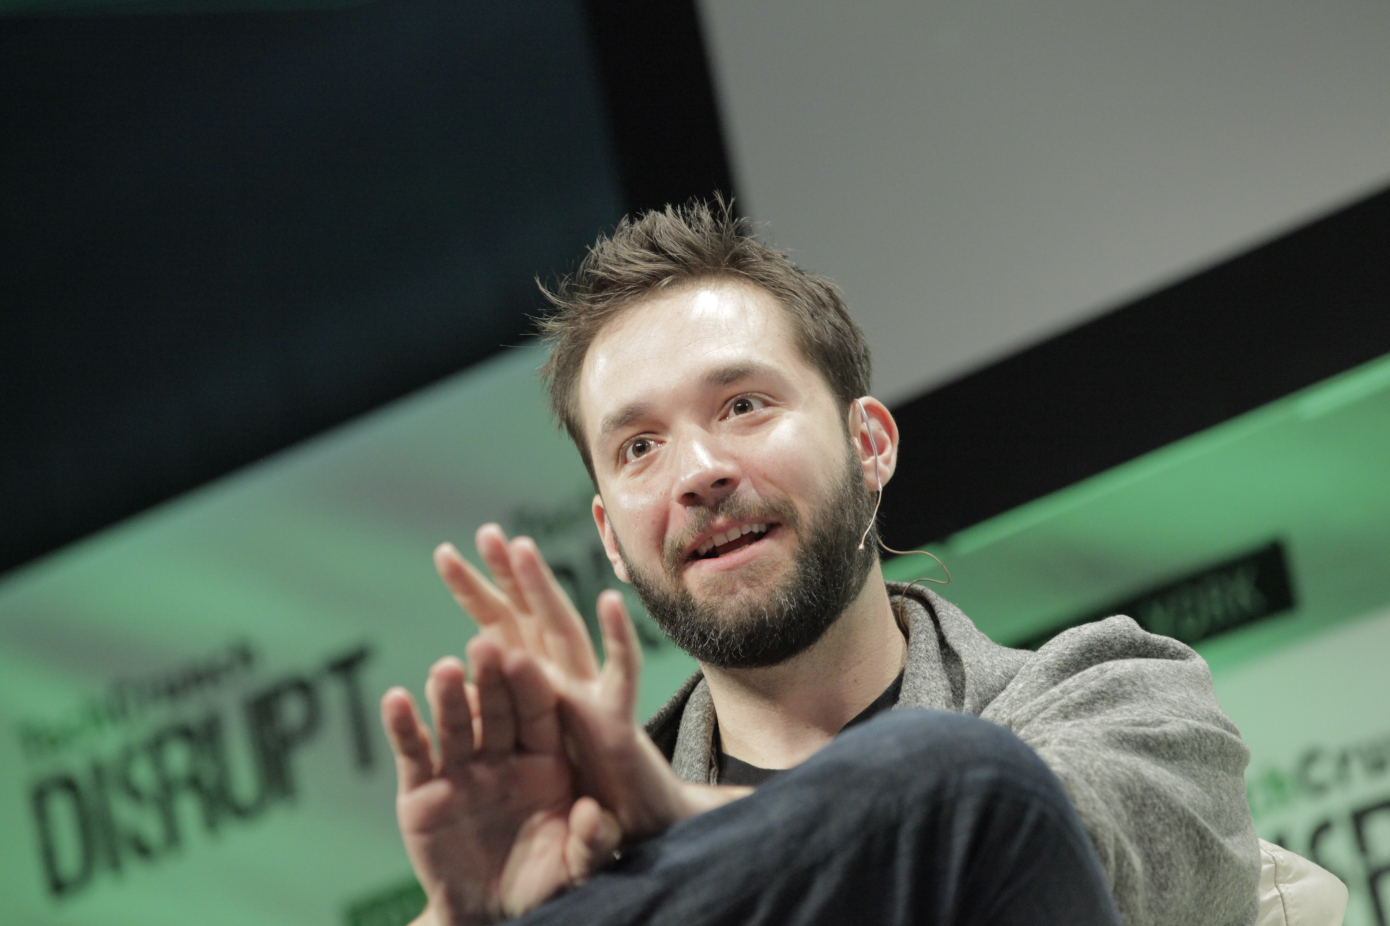 Alexis Ohanian steps down from Reddit board, asks for his seat to go to a black board member